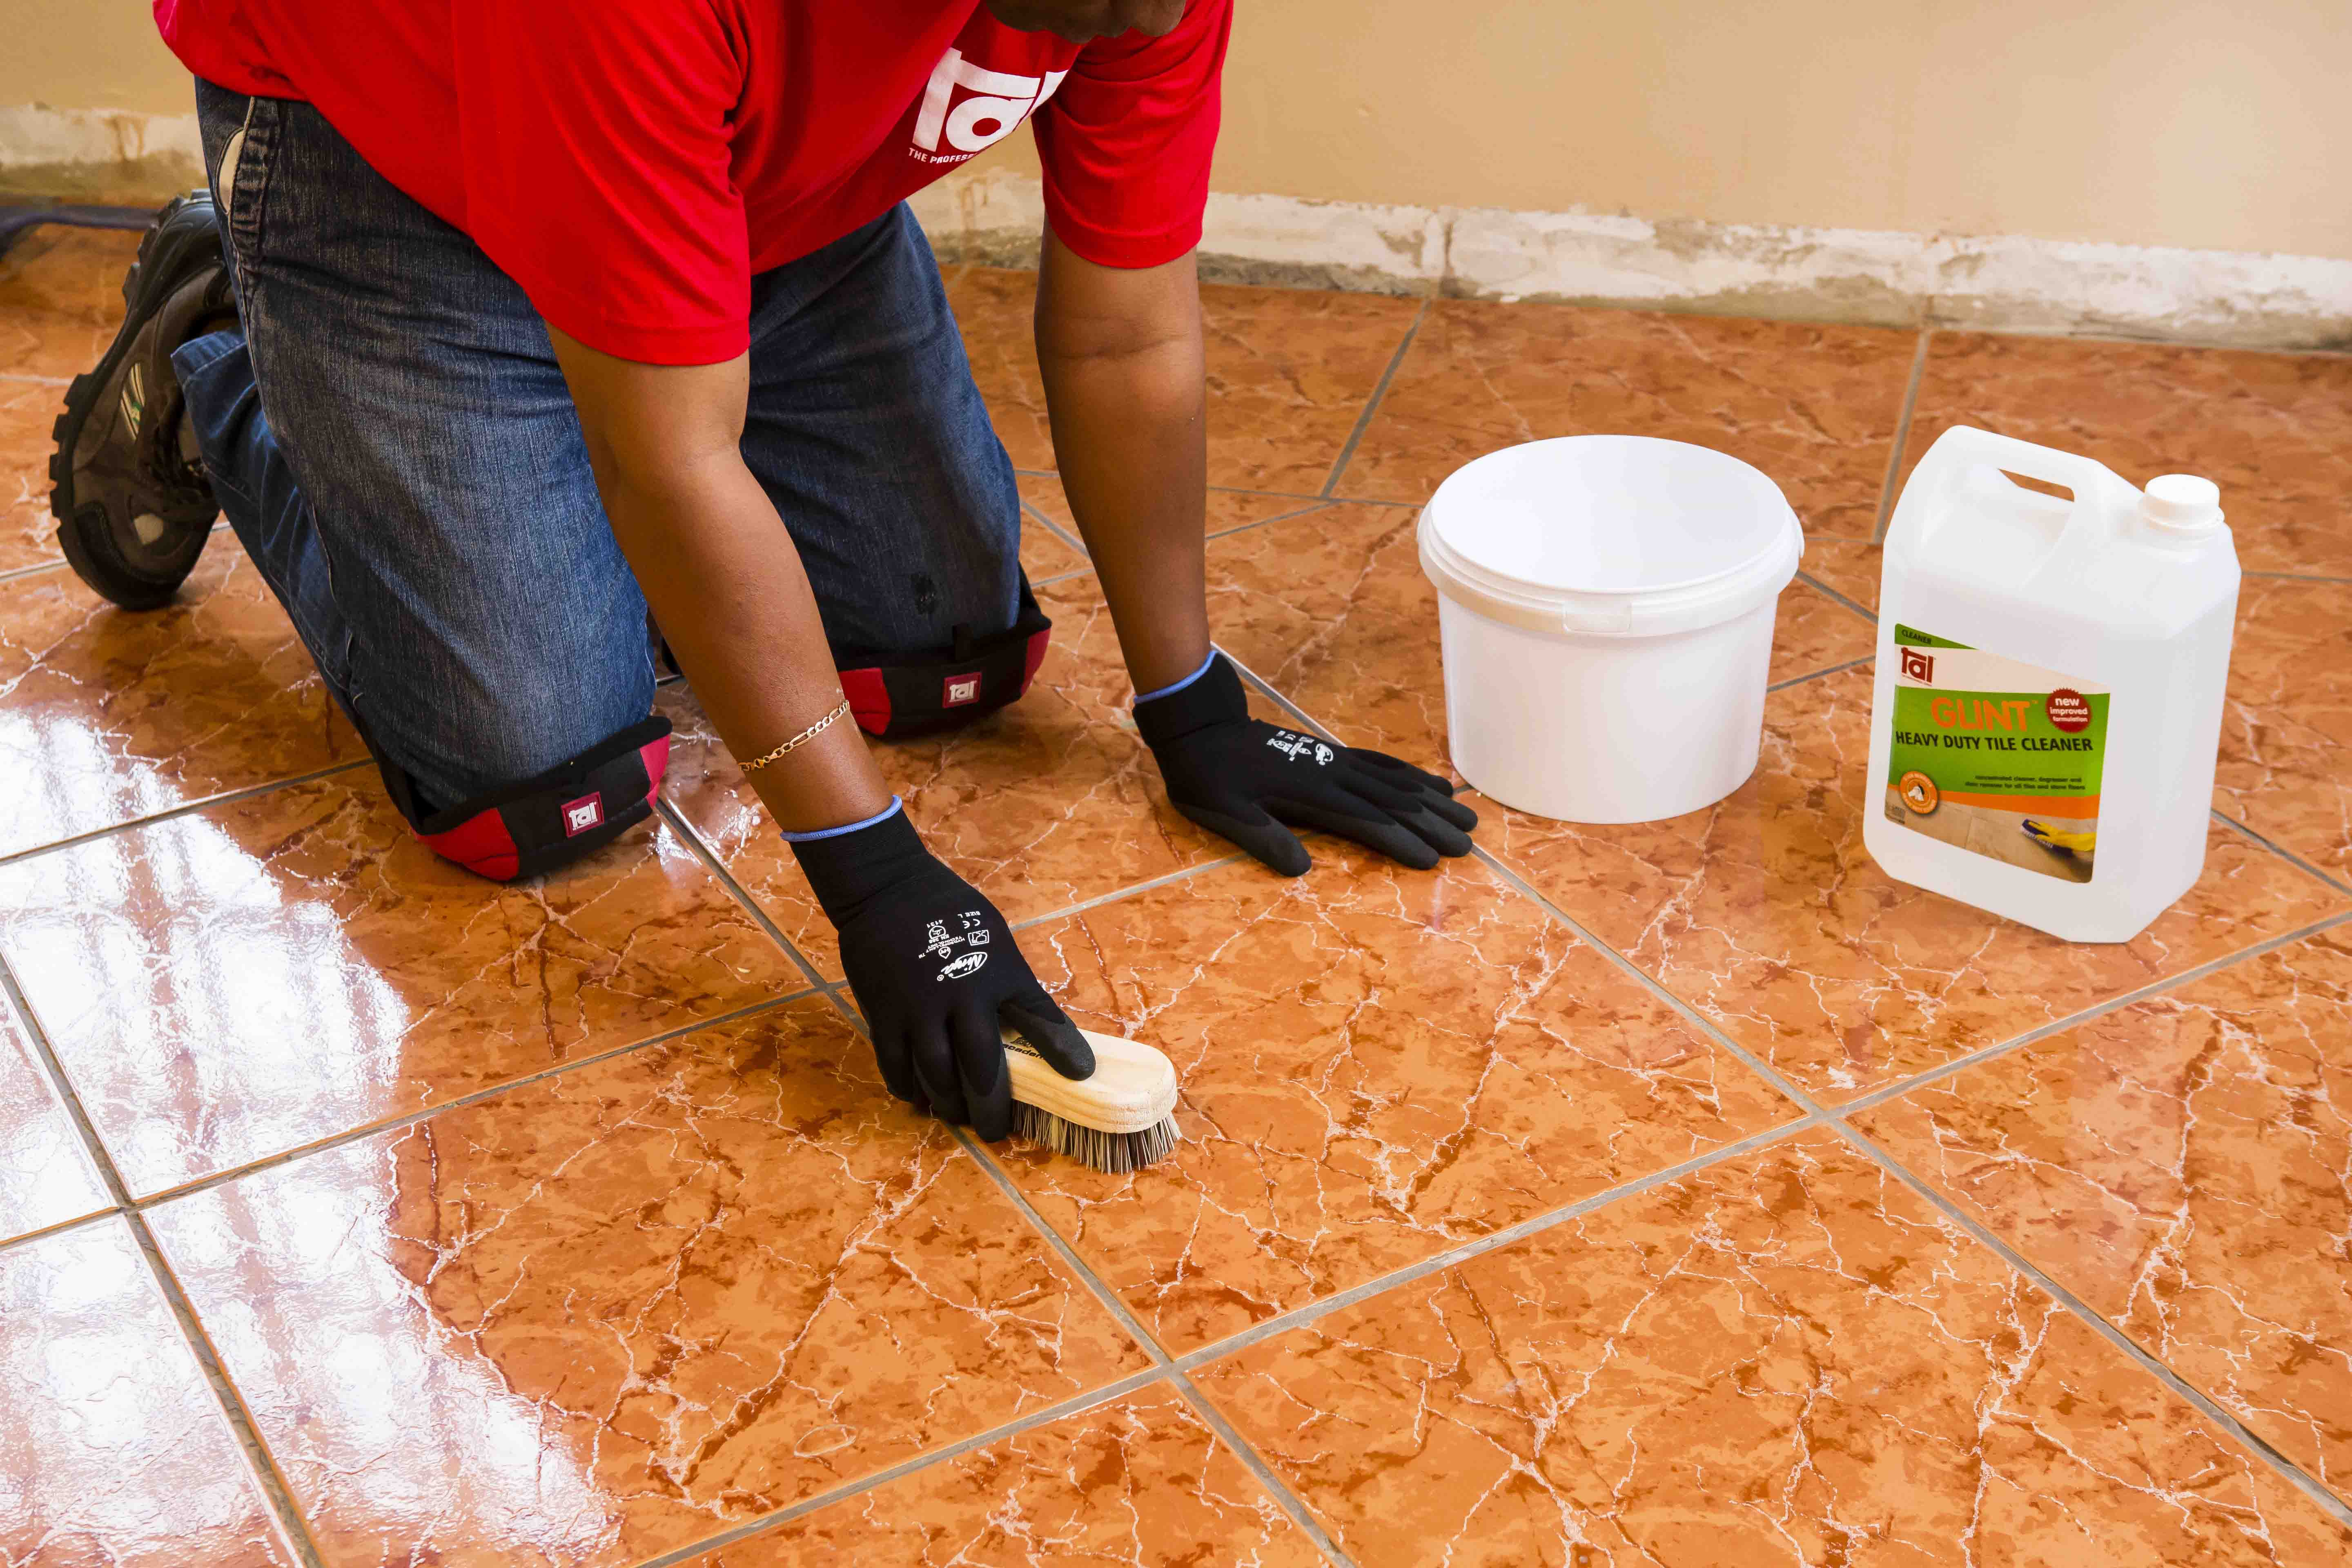 How to tile over existing tiles successfully all cracked damaged loose or hollow sounding tiles must be identified and removed before installing the new tiles tiling over hollow sounding tiles can dailygadgetfo Image collections